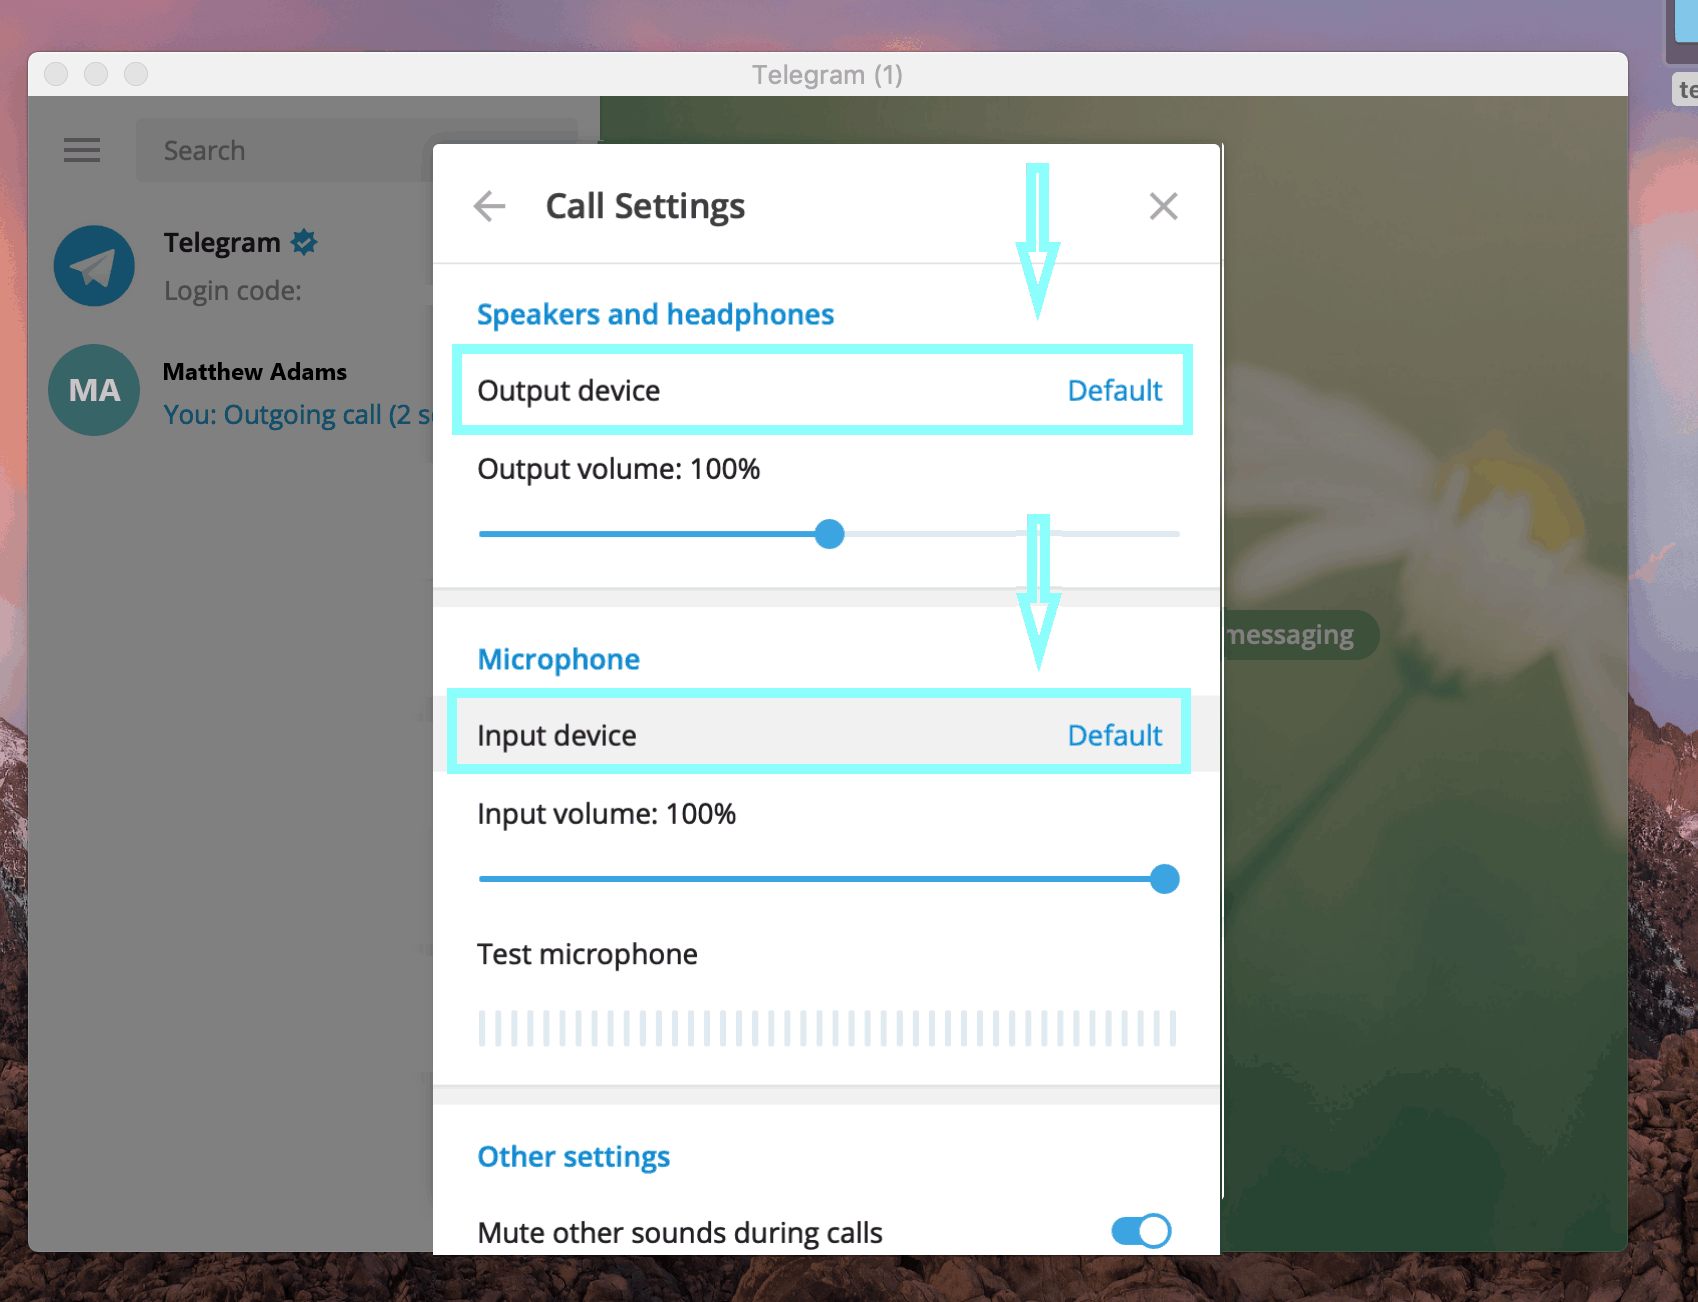 Telegram Desktop microphone and speaker settings